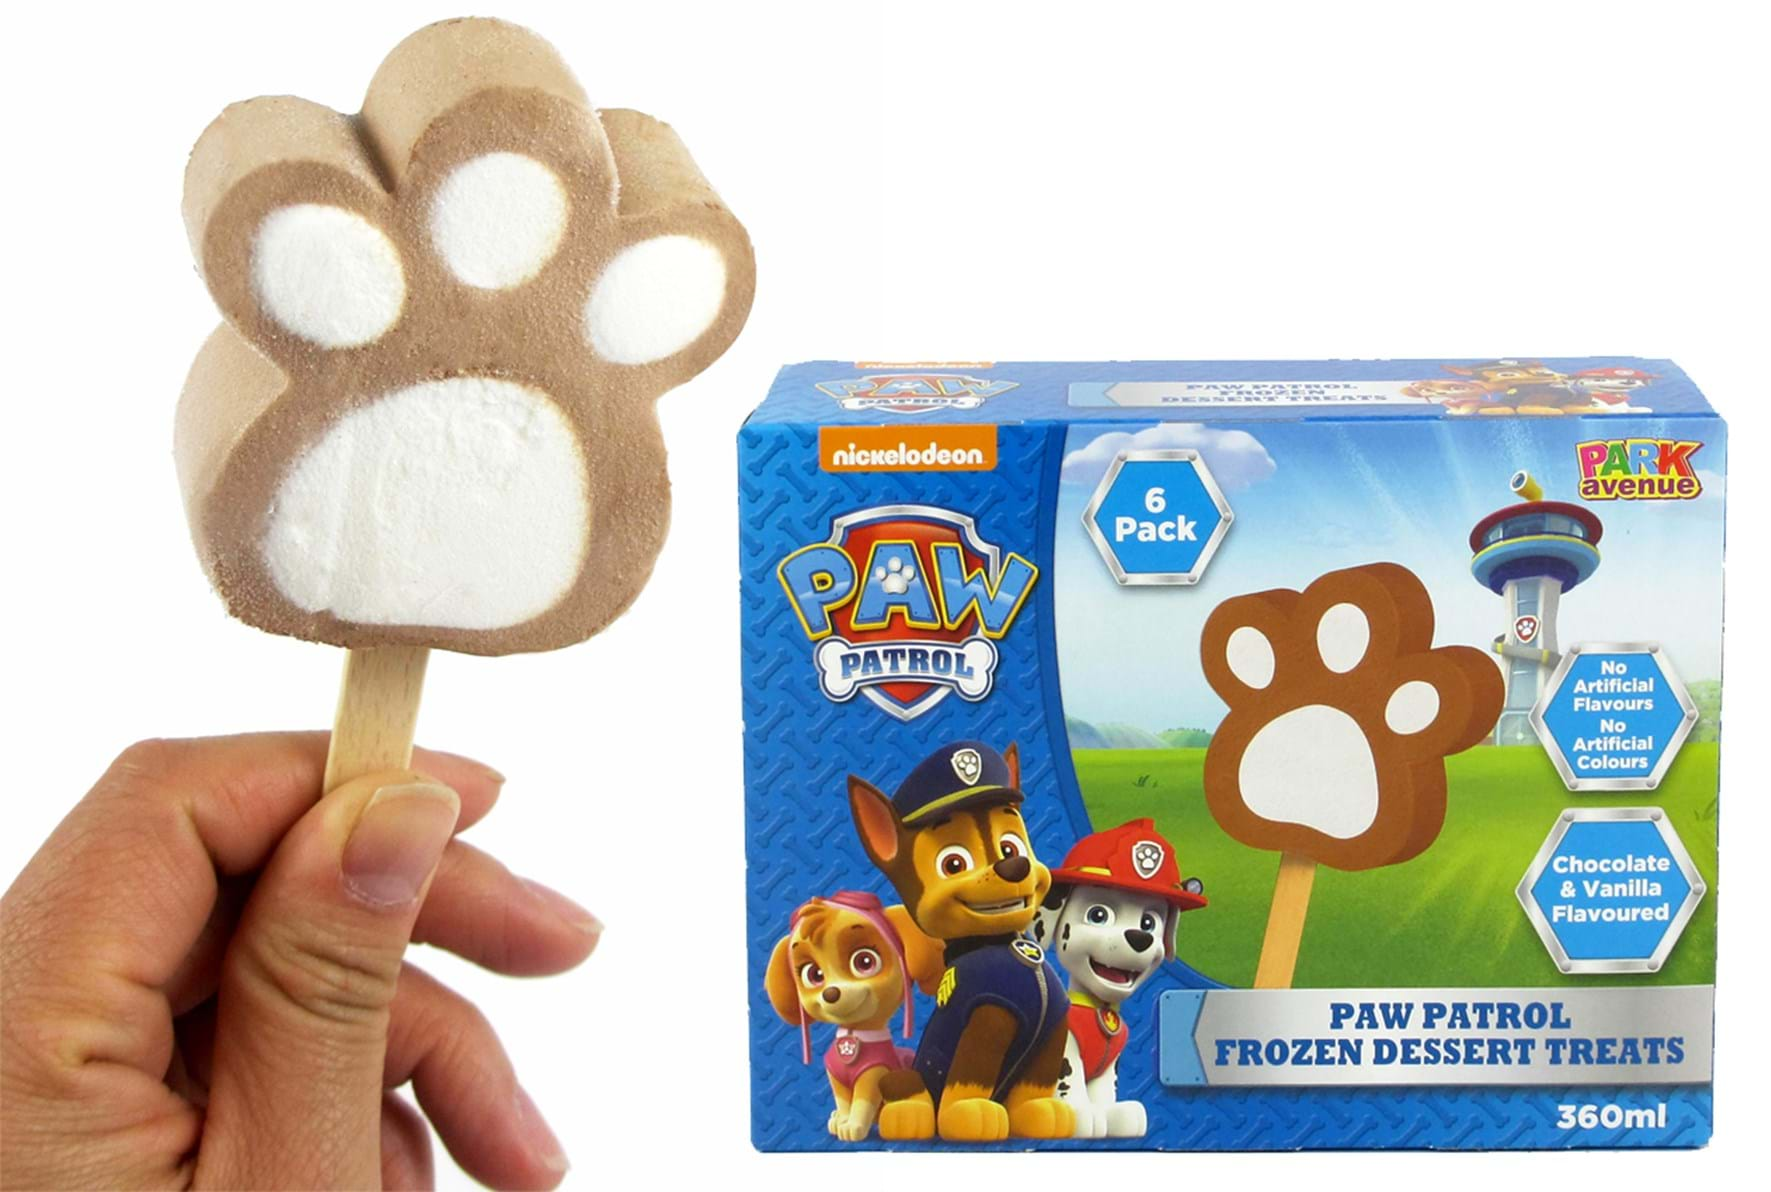 Paw Patrol FMCG Program